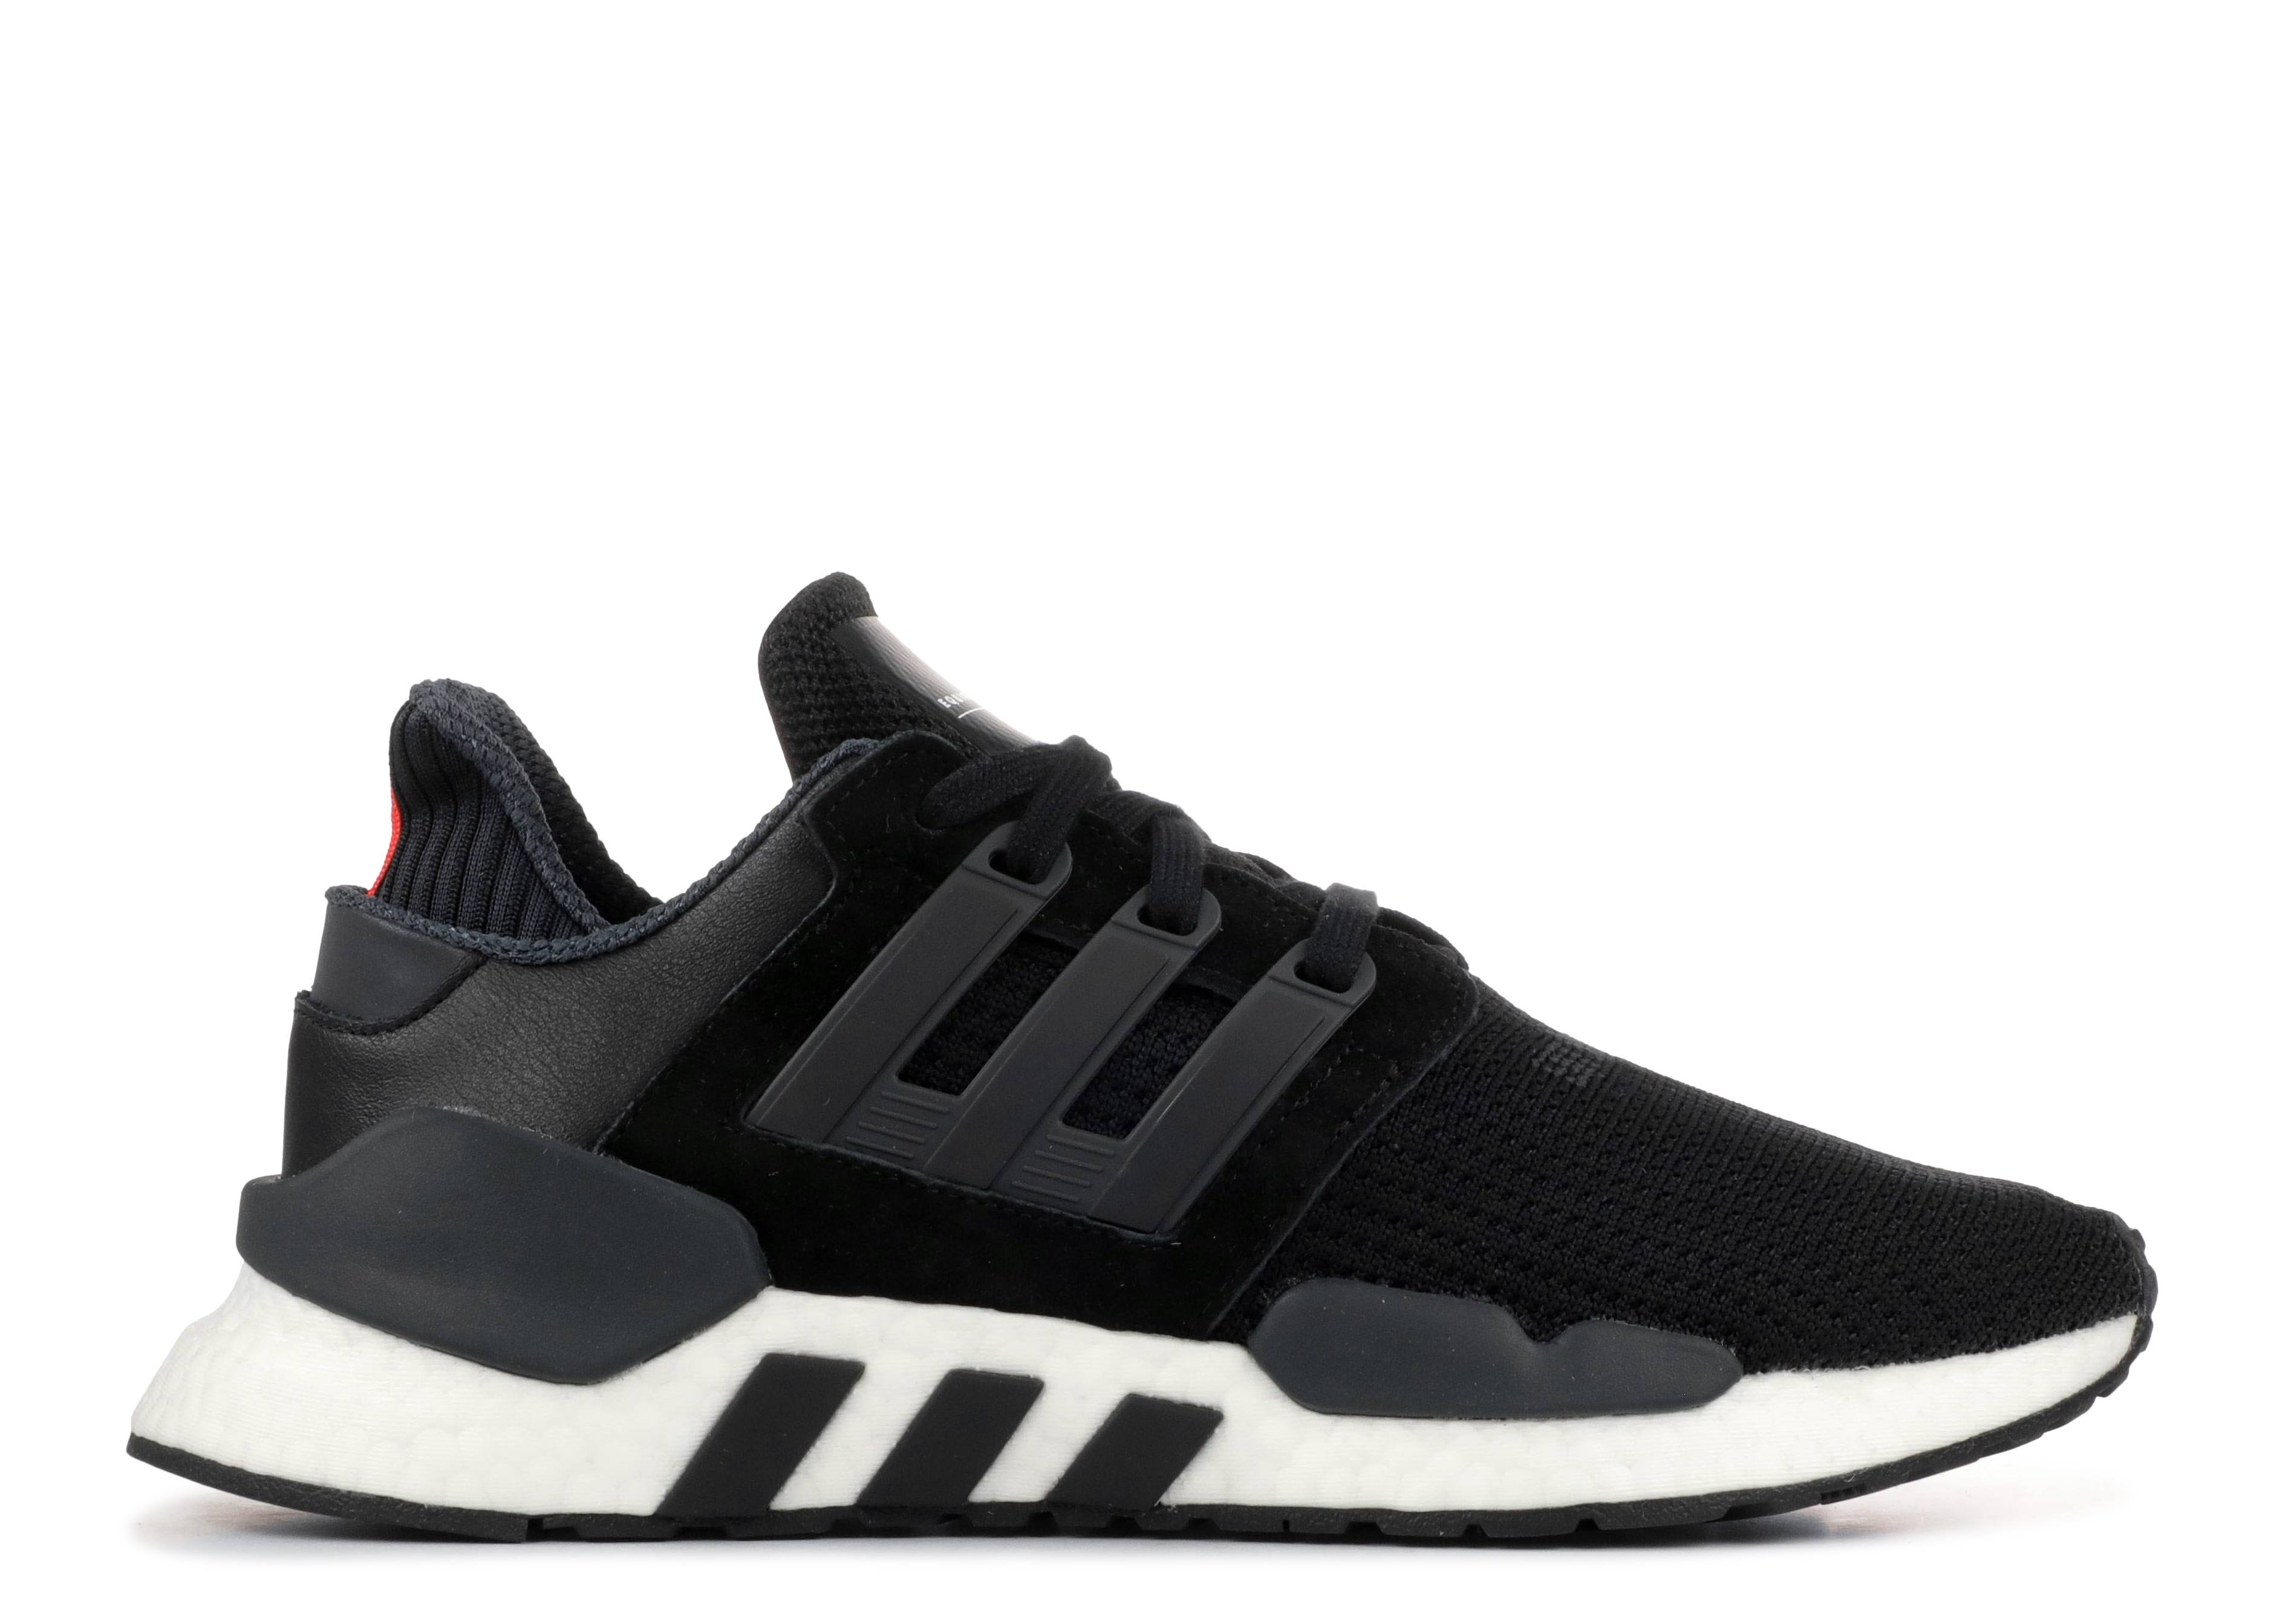 competitive price 512cb 9473c ZX/EQT Series - Adidas | Flight Club